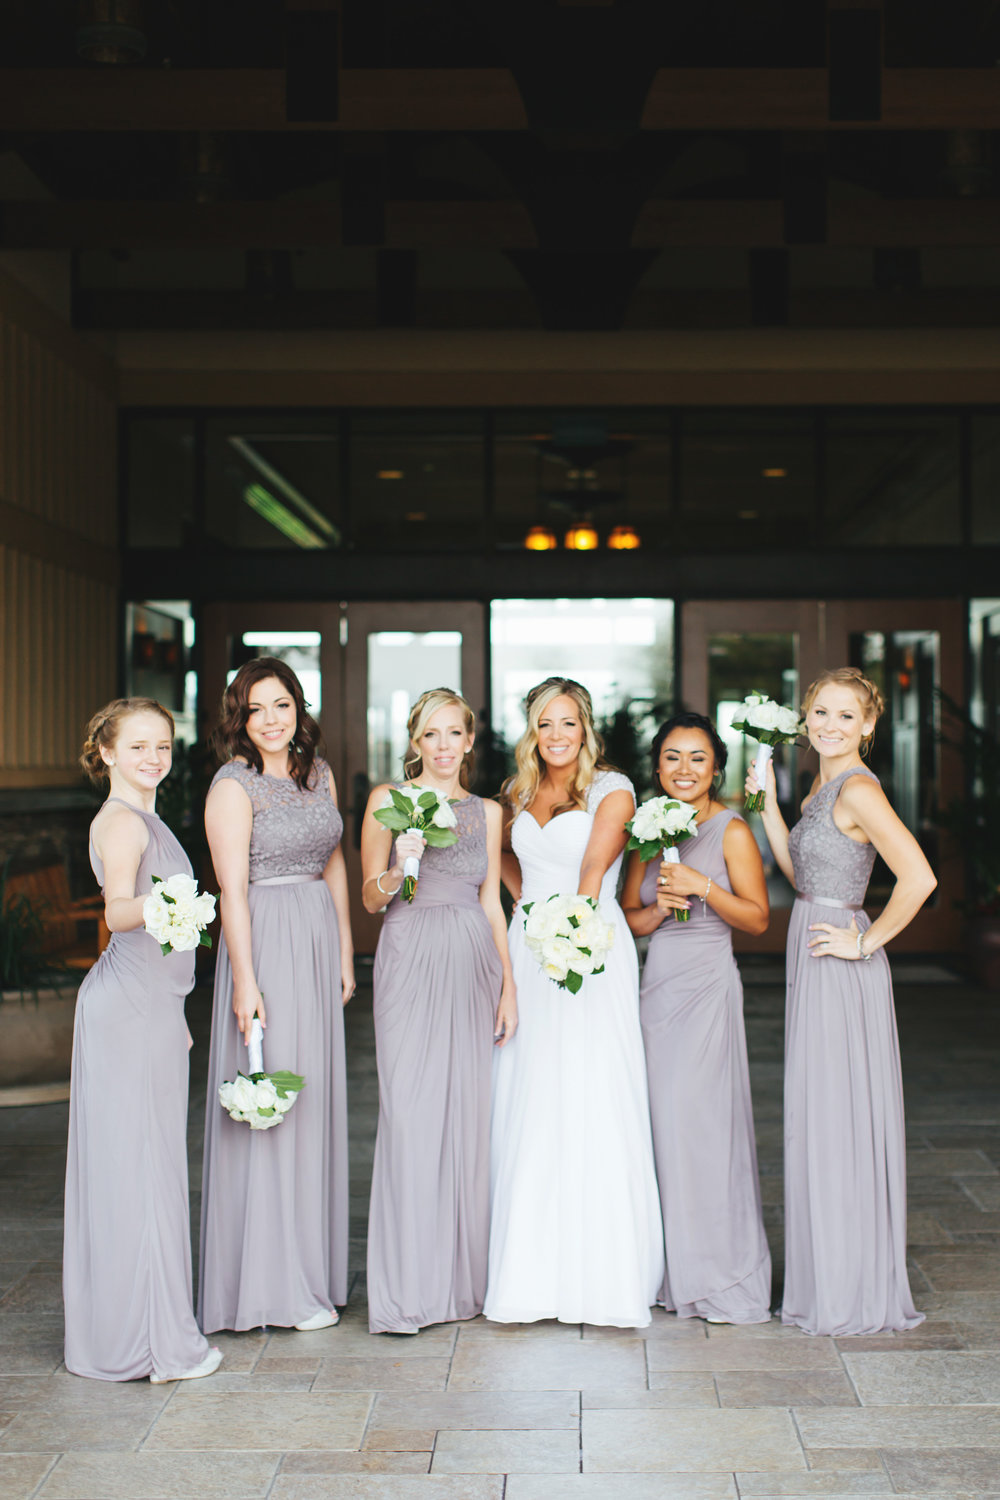 R&M Bride & Girls + 039j rep.jpg